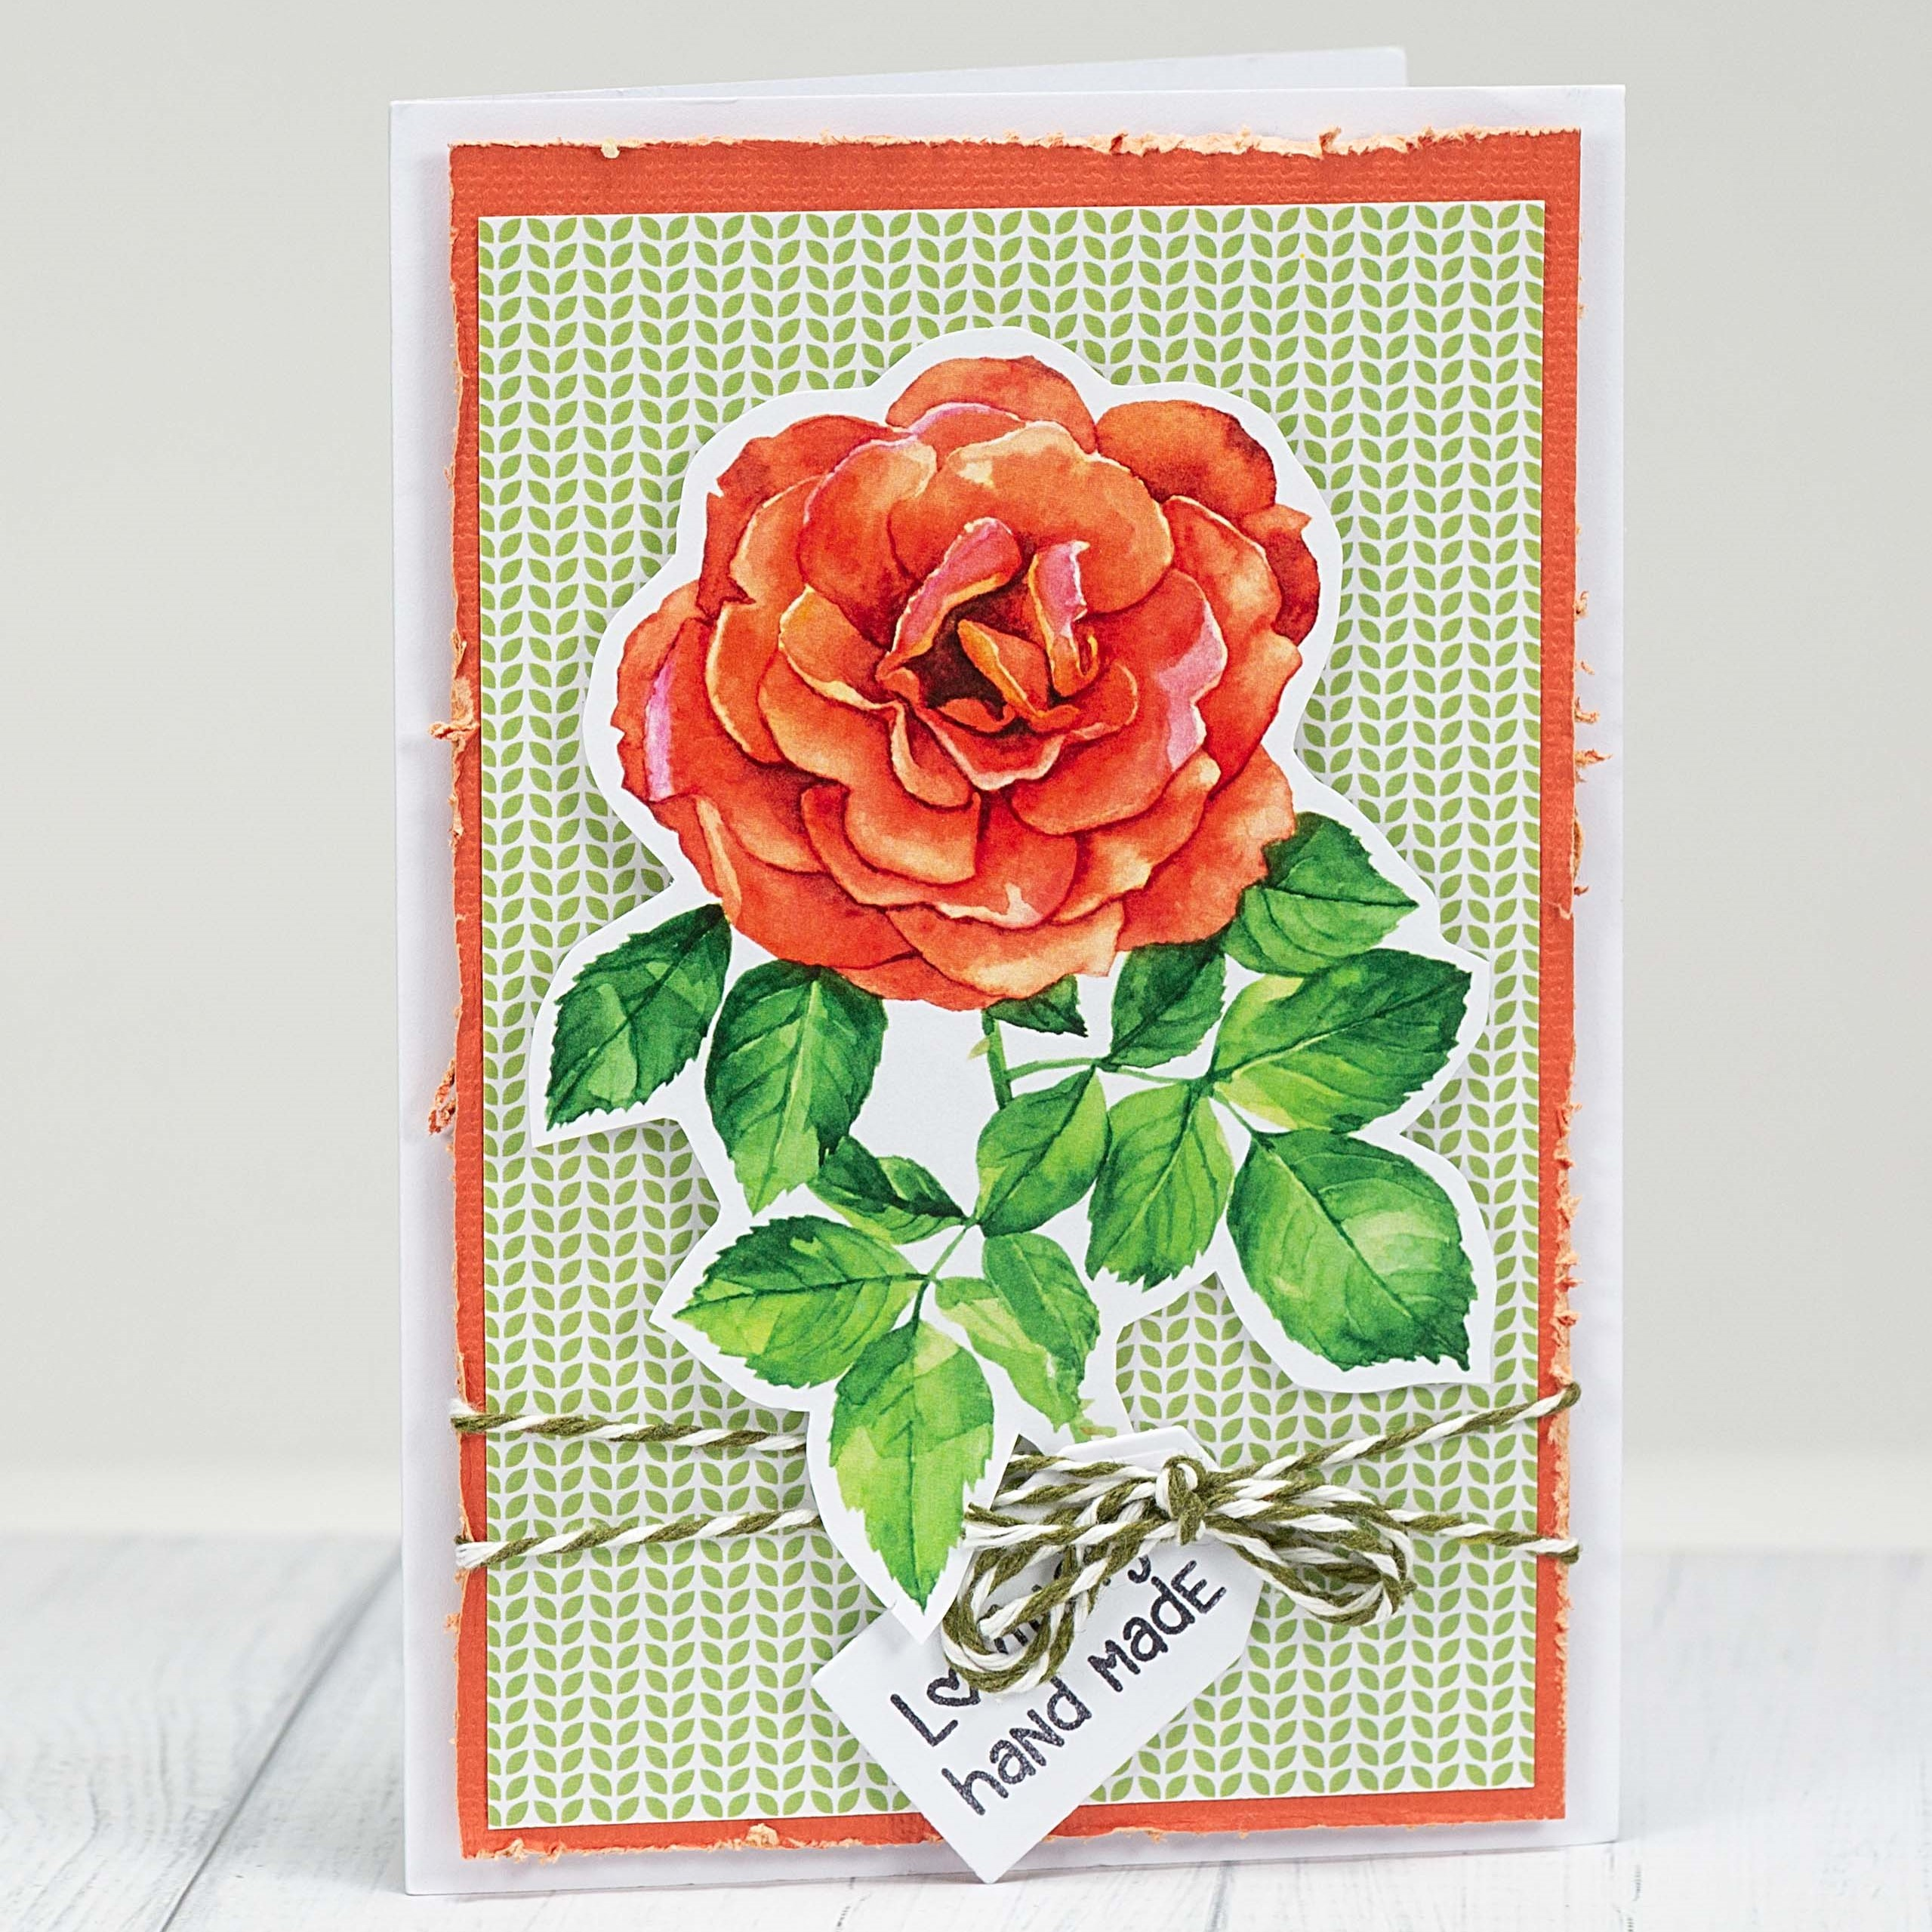 Flower card making ideas: handmade with love